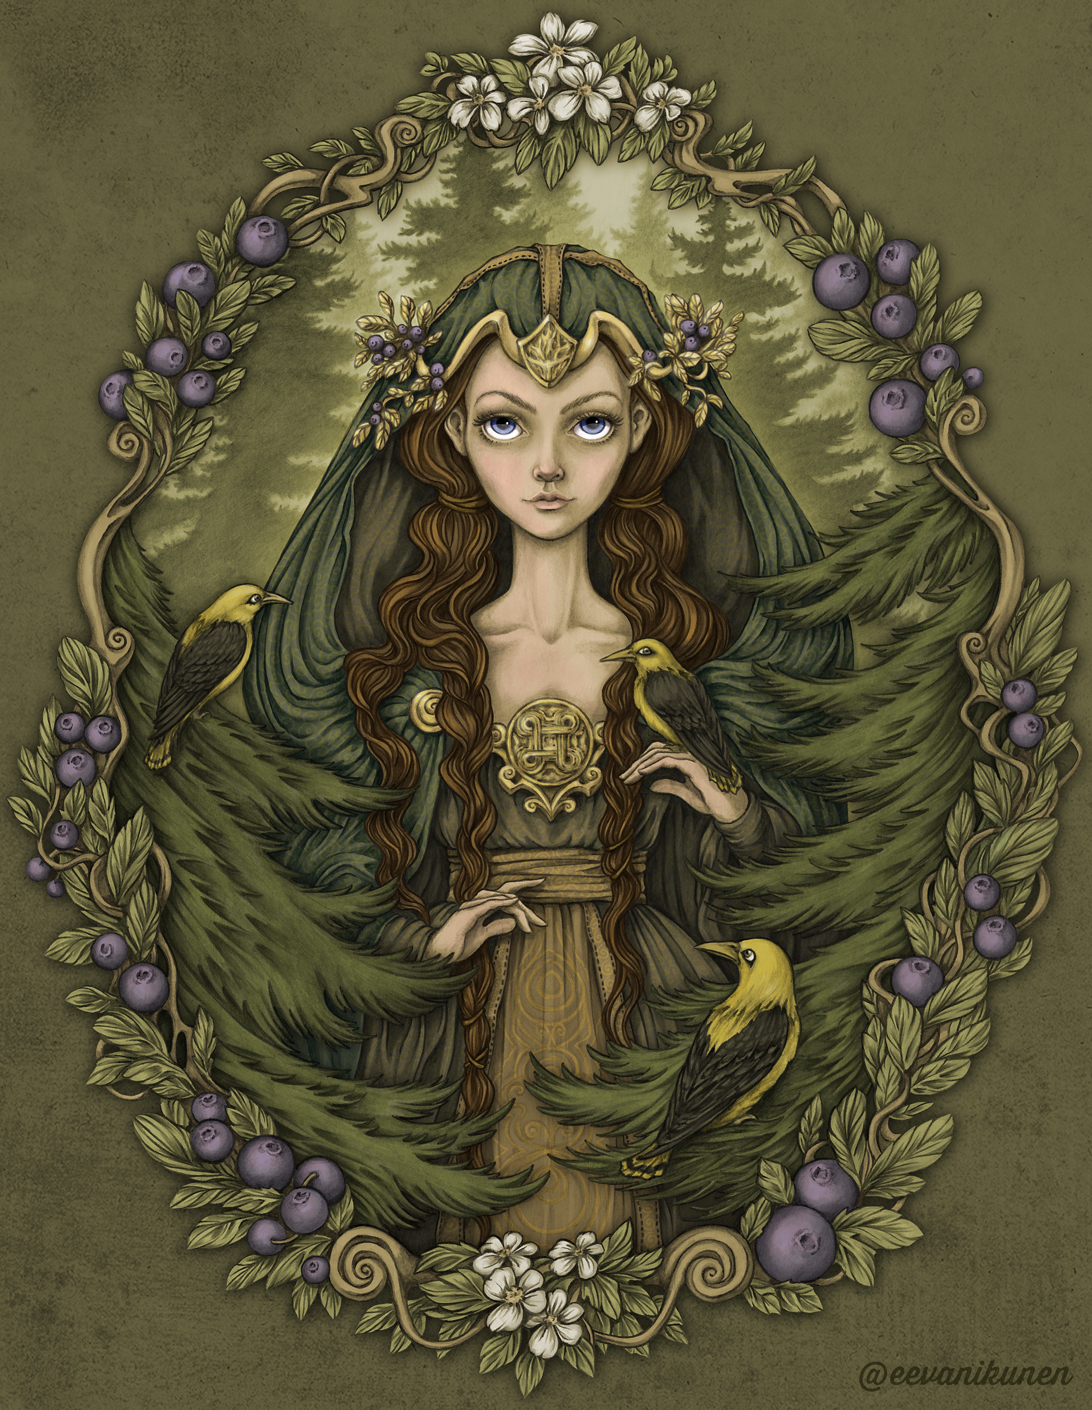 Her name is Mielikki, she's the Lady of the Woods and healer of wounded animals. She can be seen disguised as a hunched back old woman picking berries. But under that hooded cloak is really the beautiful Queen of the Forest… and she's watching you closely as you pass through her realm.